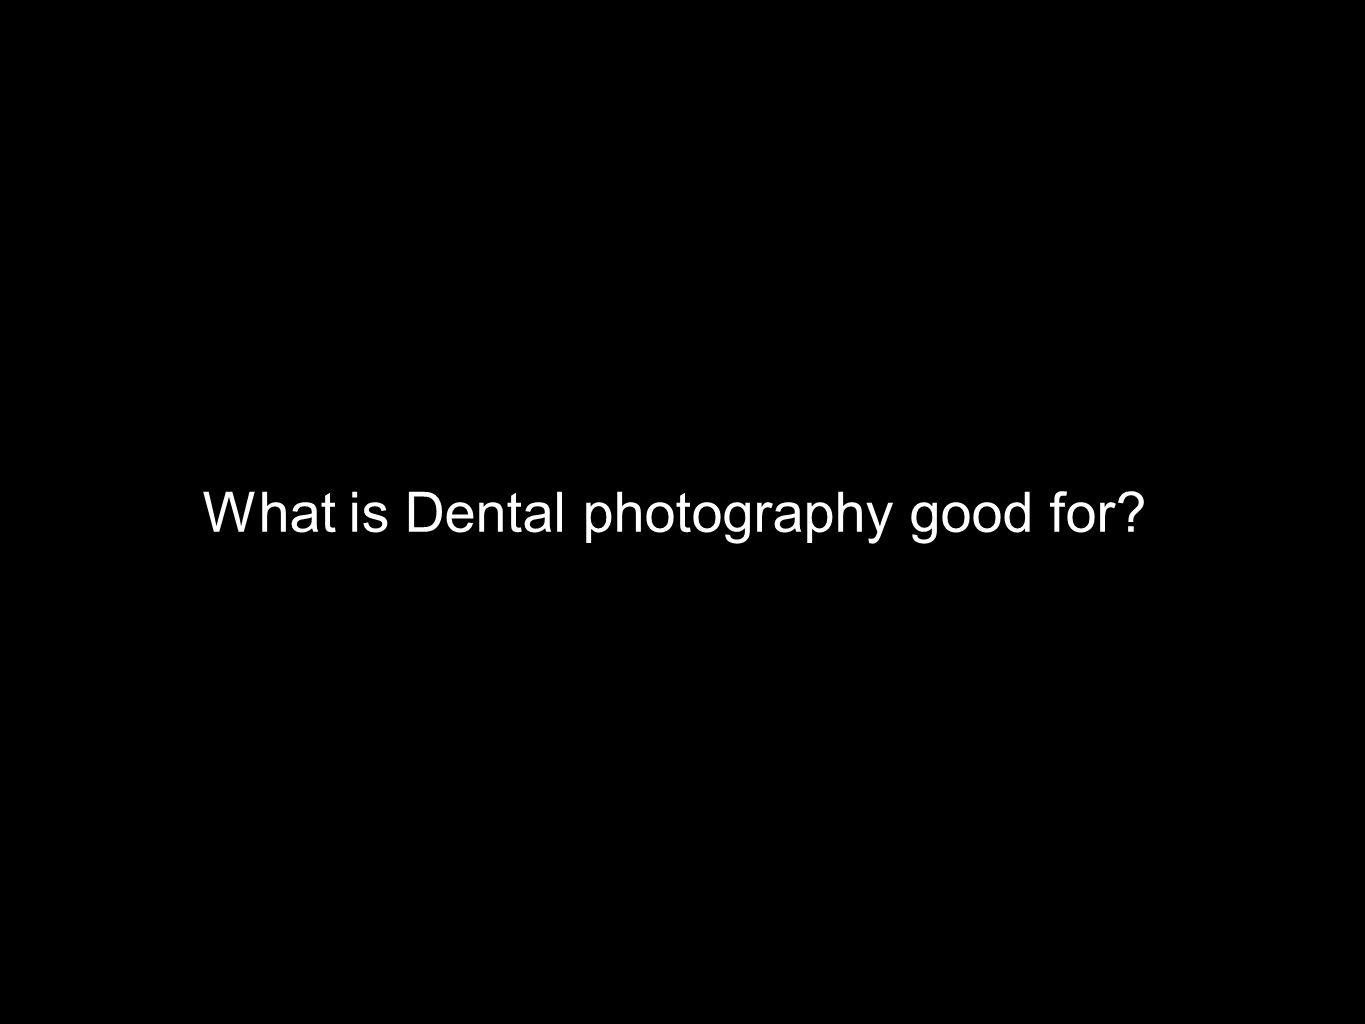 What is Dental photography good for?